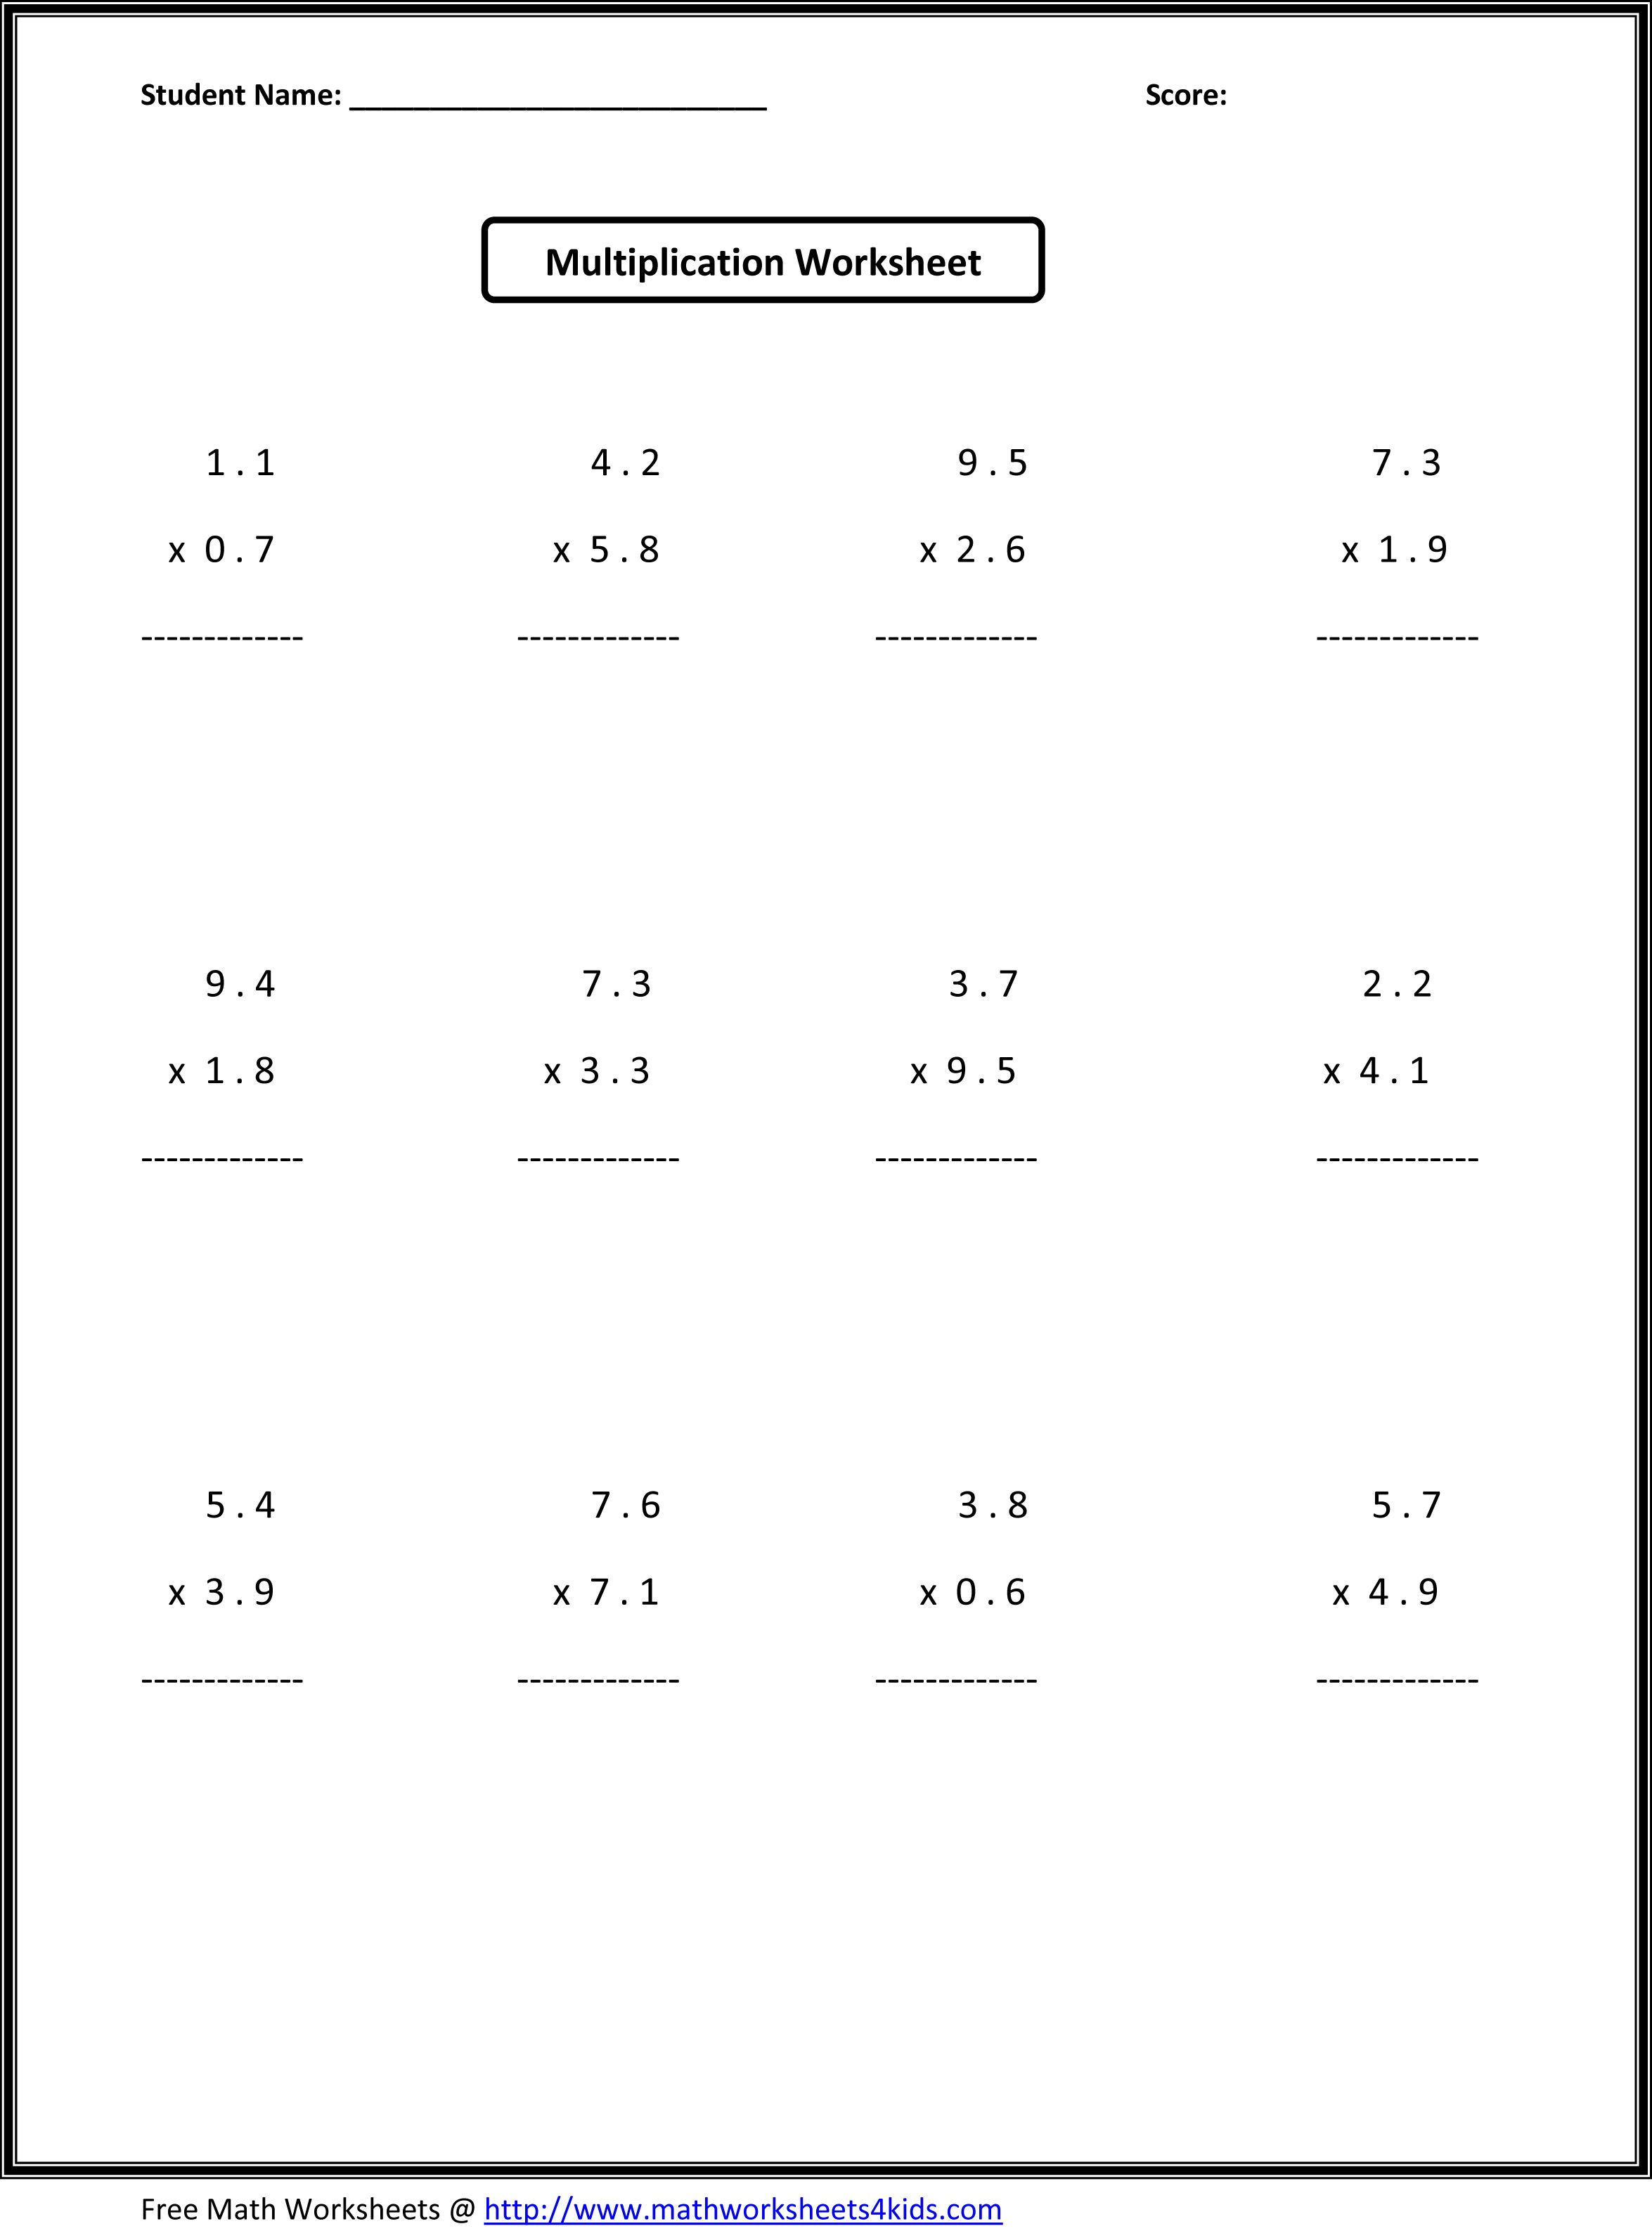 Uncategorized Free 7th Grade Math Worksheets 7th grade math worksheets value absolute based on basic math